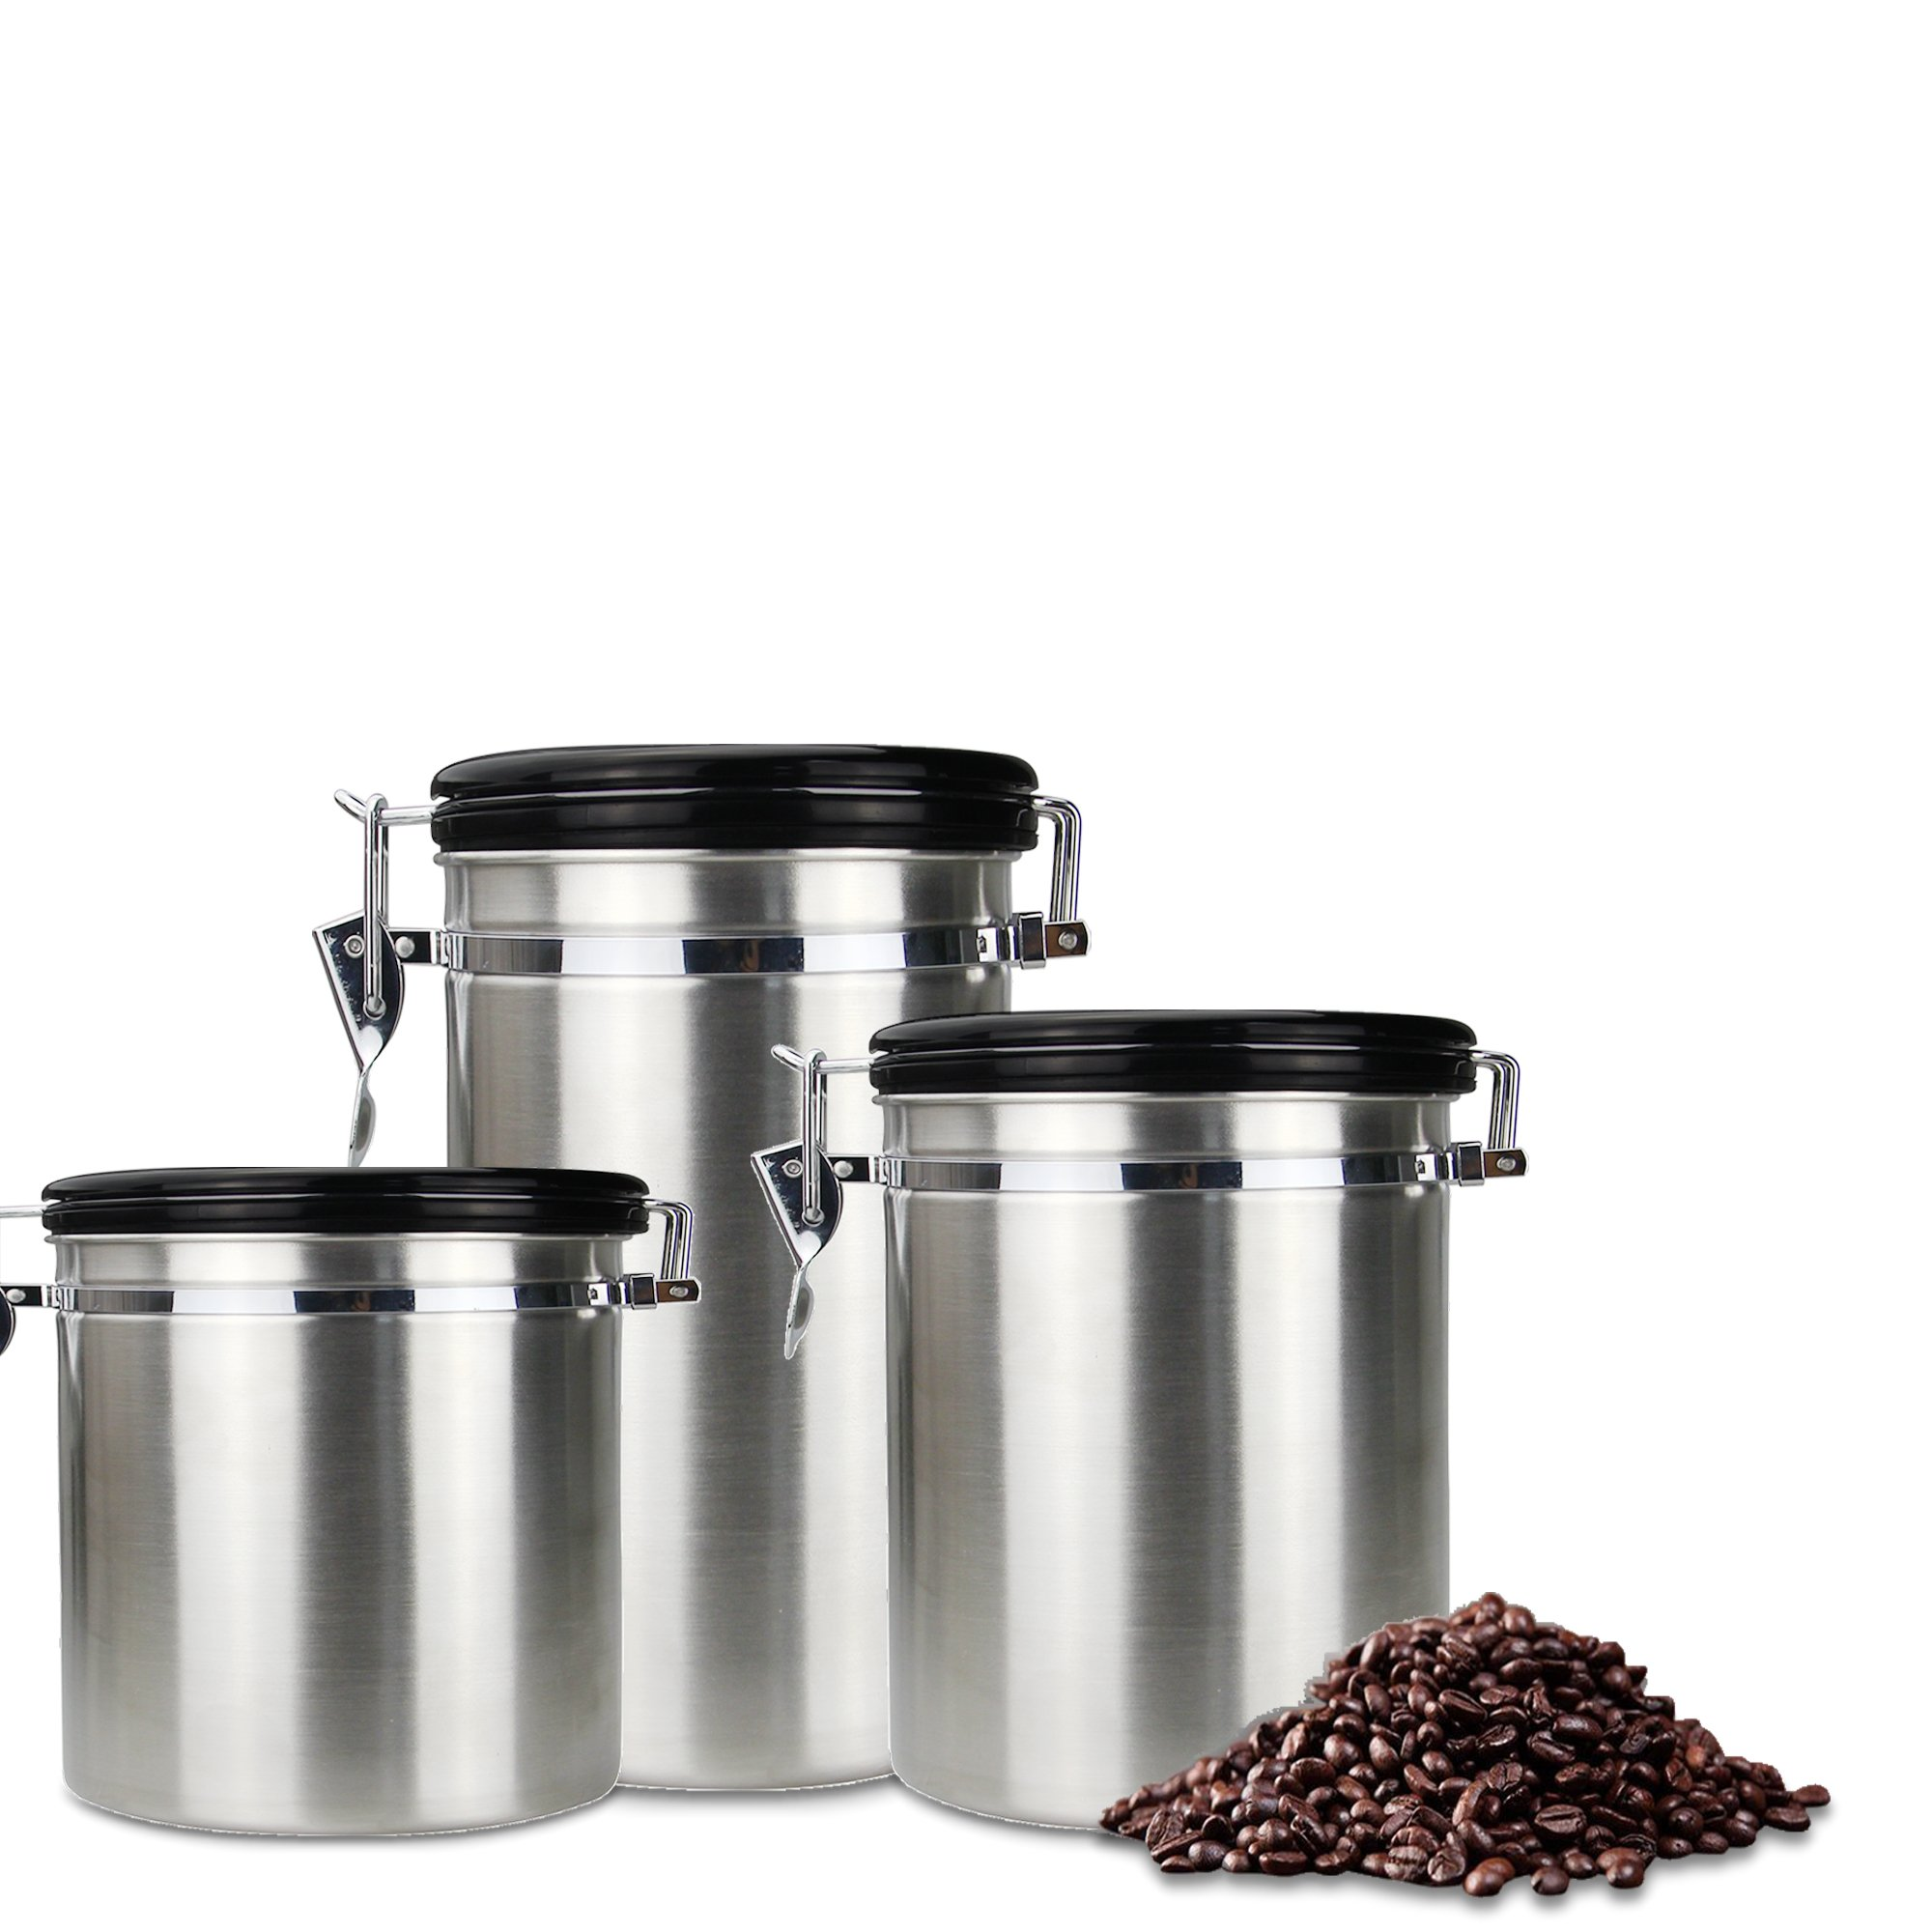 Details About Airtight Coffee Flour Sugar Stainless Steel Container Dili Kitchen Storage